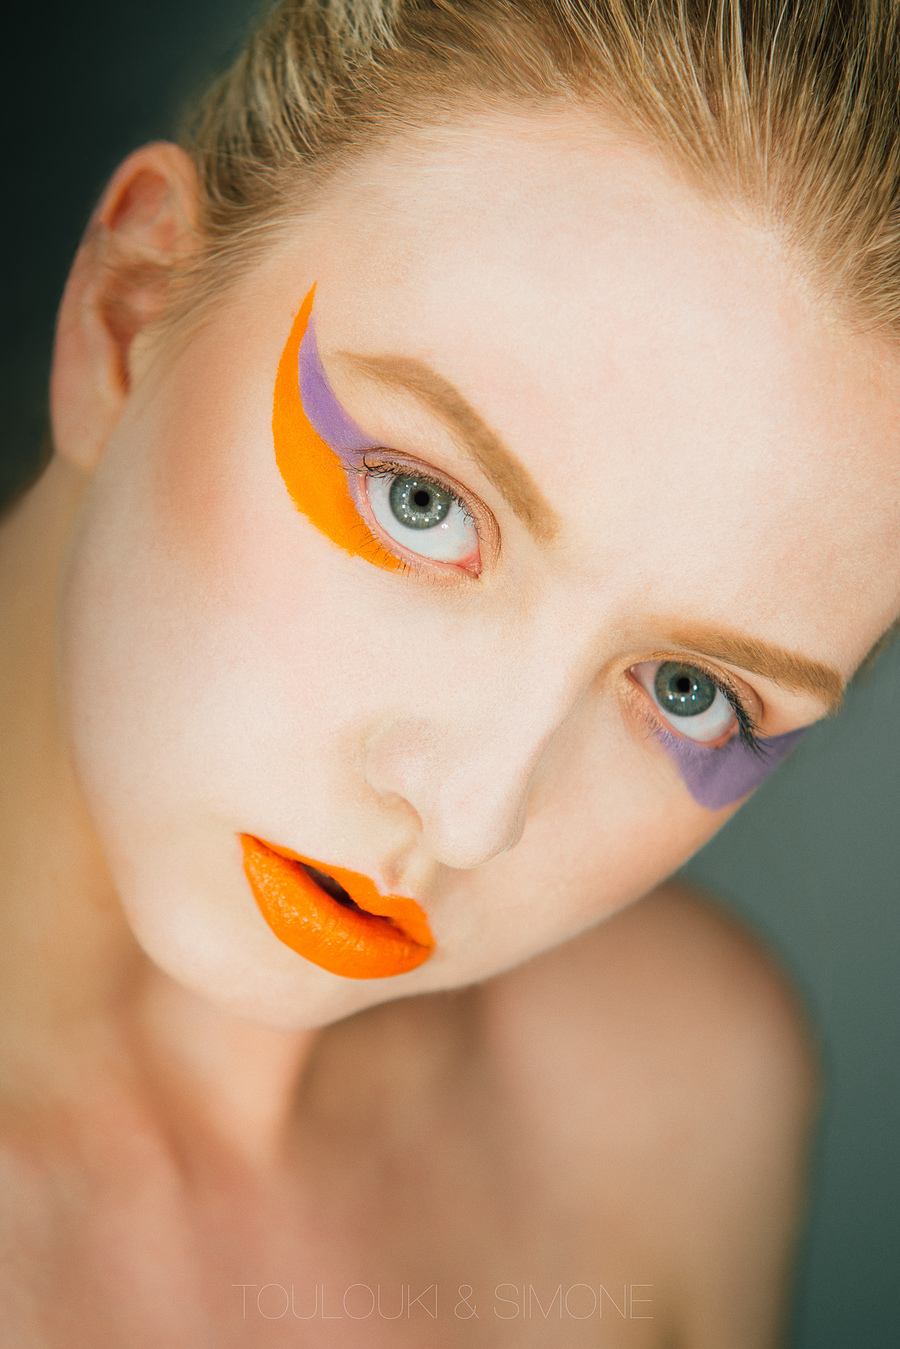 Geo / Photography by Toulouki Orsini, Model Nicole Rayner, Makeup by GH Makeup, Assisted by Simone Orsini / Uploaded 30th June 2017 @ 06:31 PM